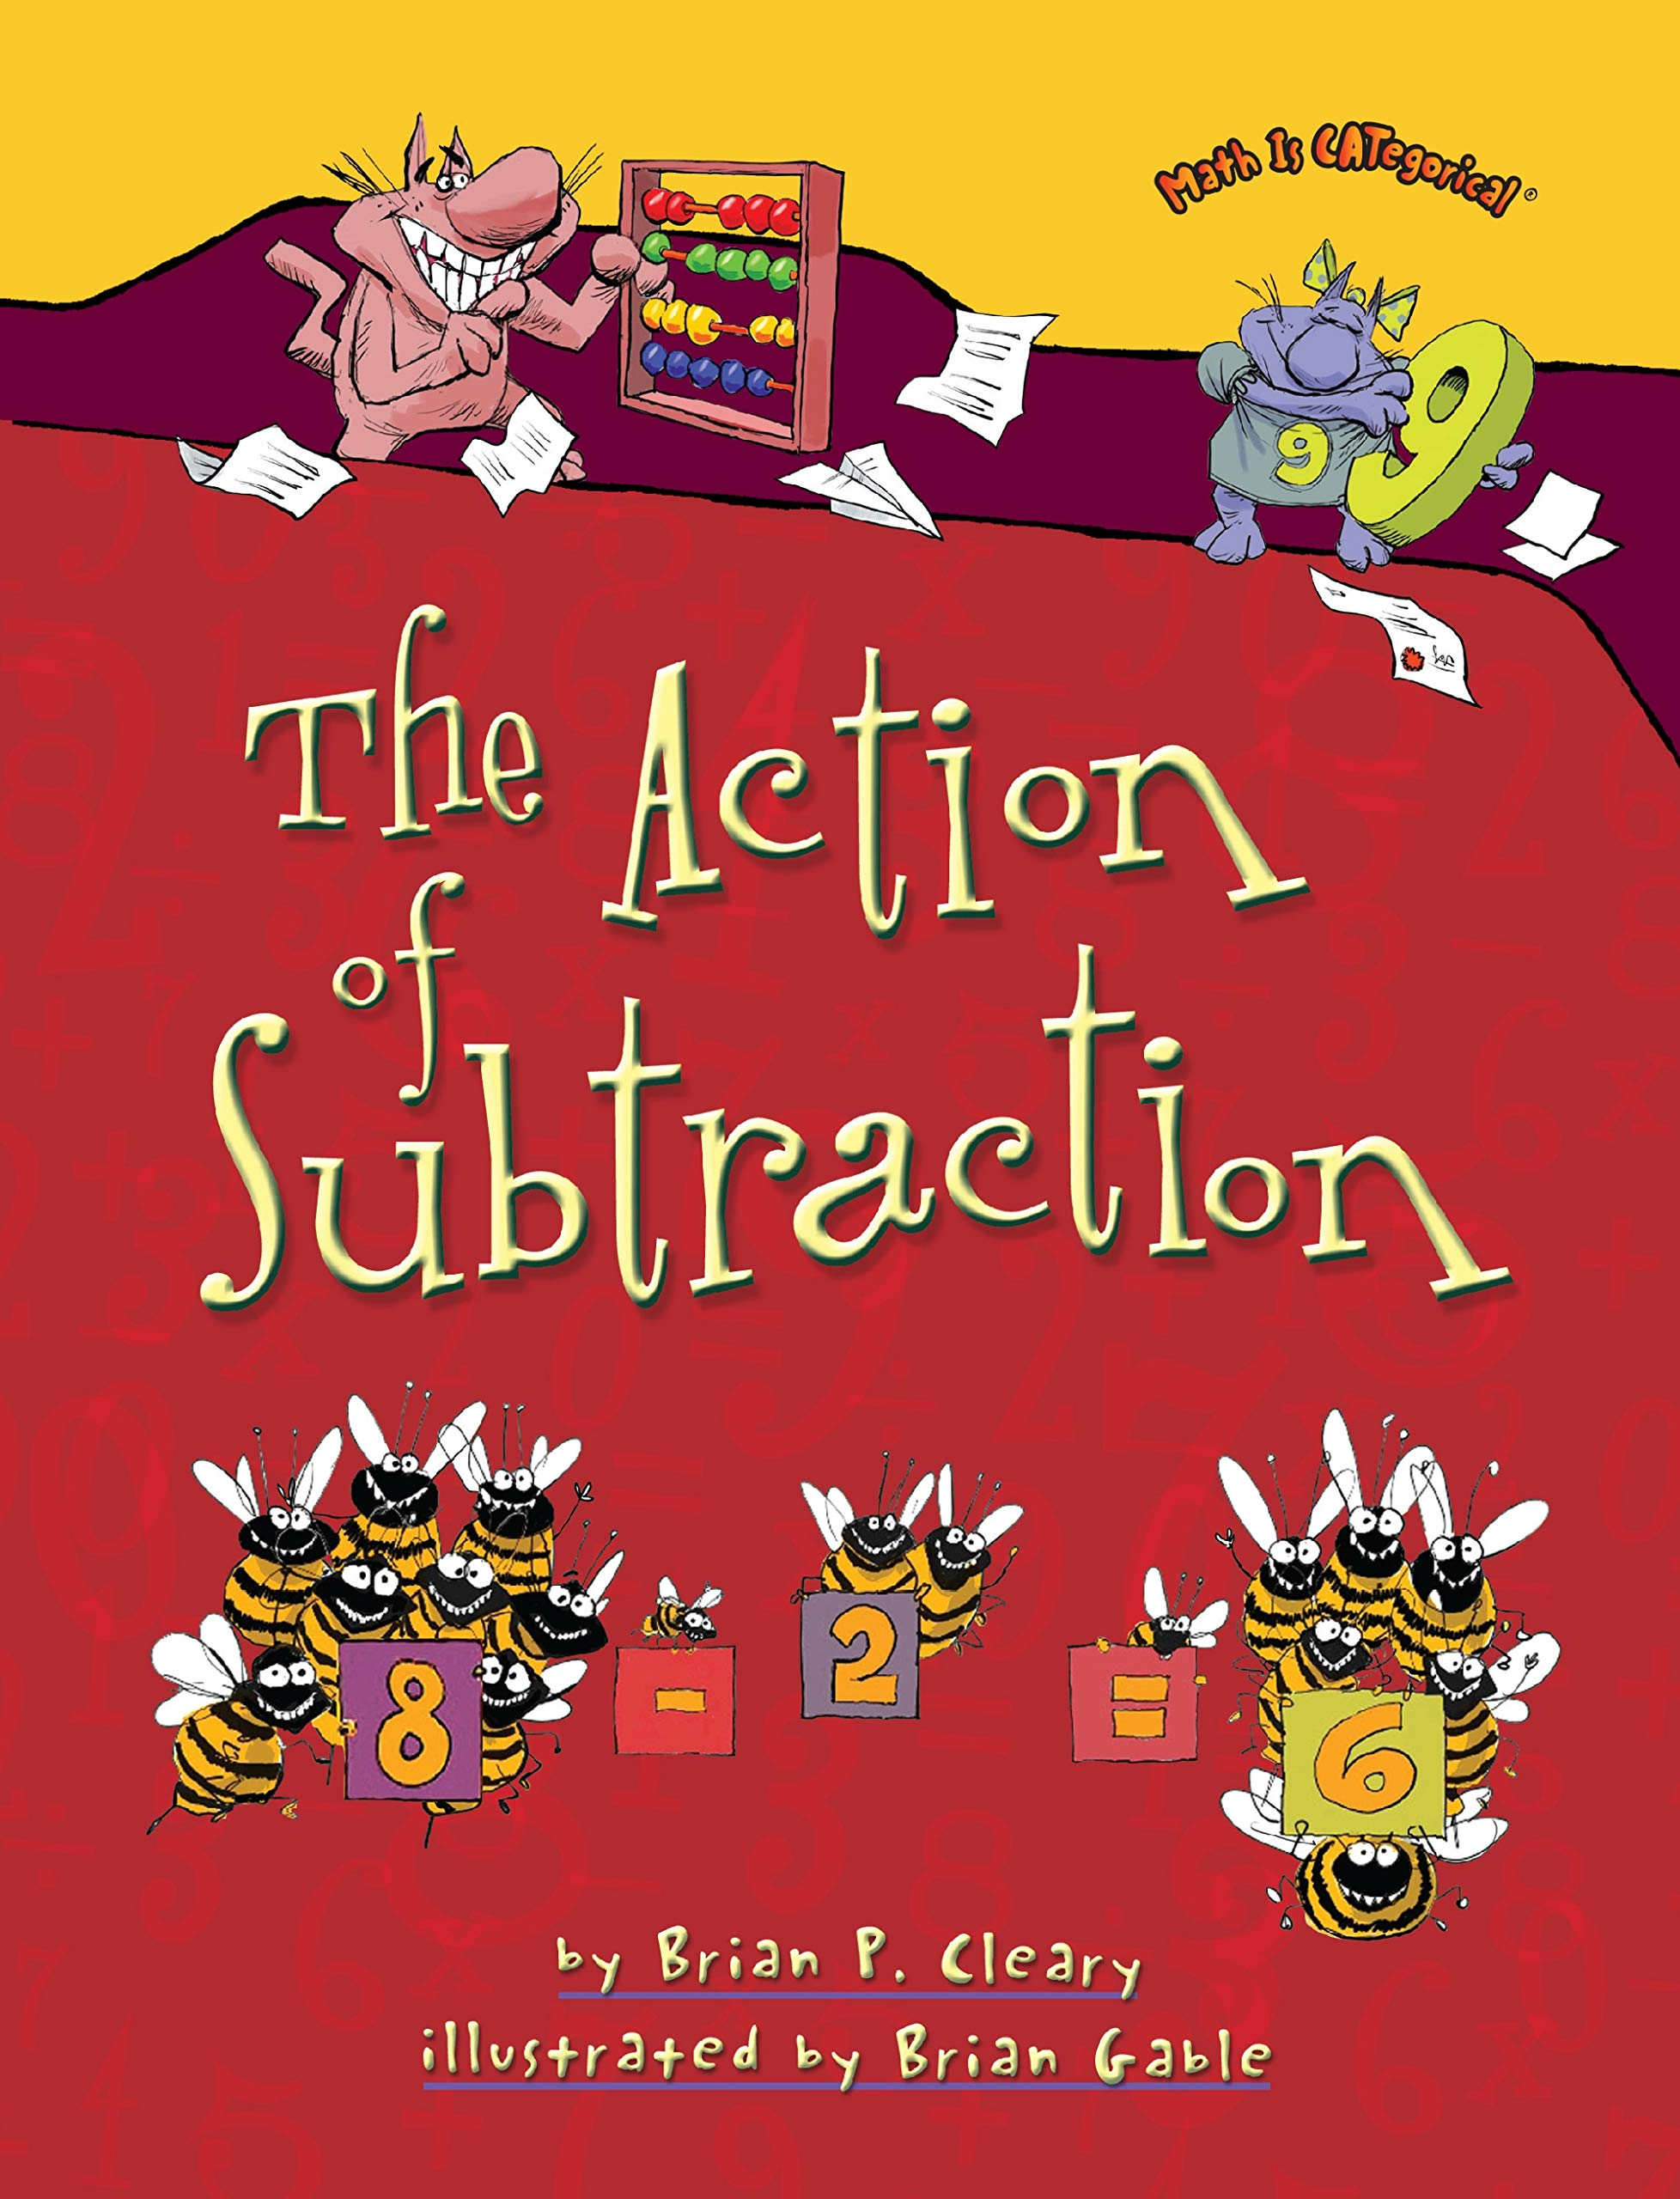 Read Online The Action of Subtraction (Math Is Categorical) PDF